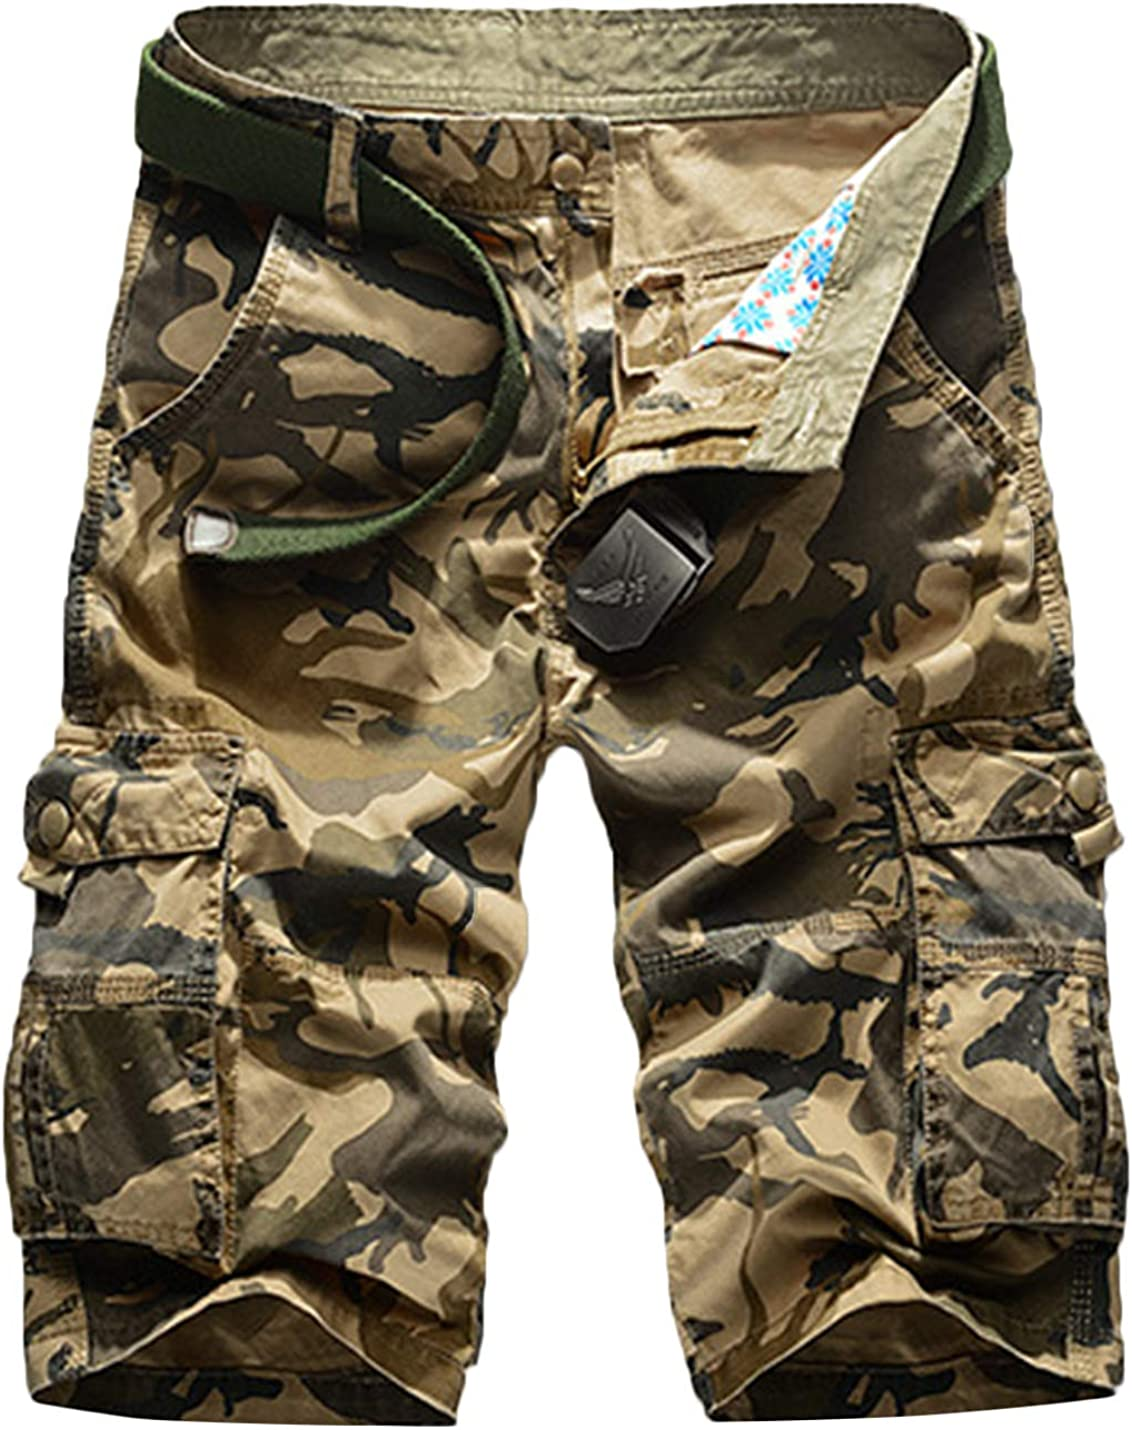 Springrain Men's Spring Summer Casual Beach Style Camouflage Cargo Shorts Large Size Multiple Pockets Five Pants